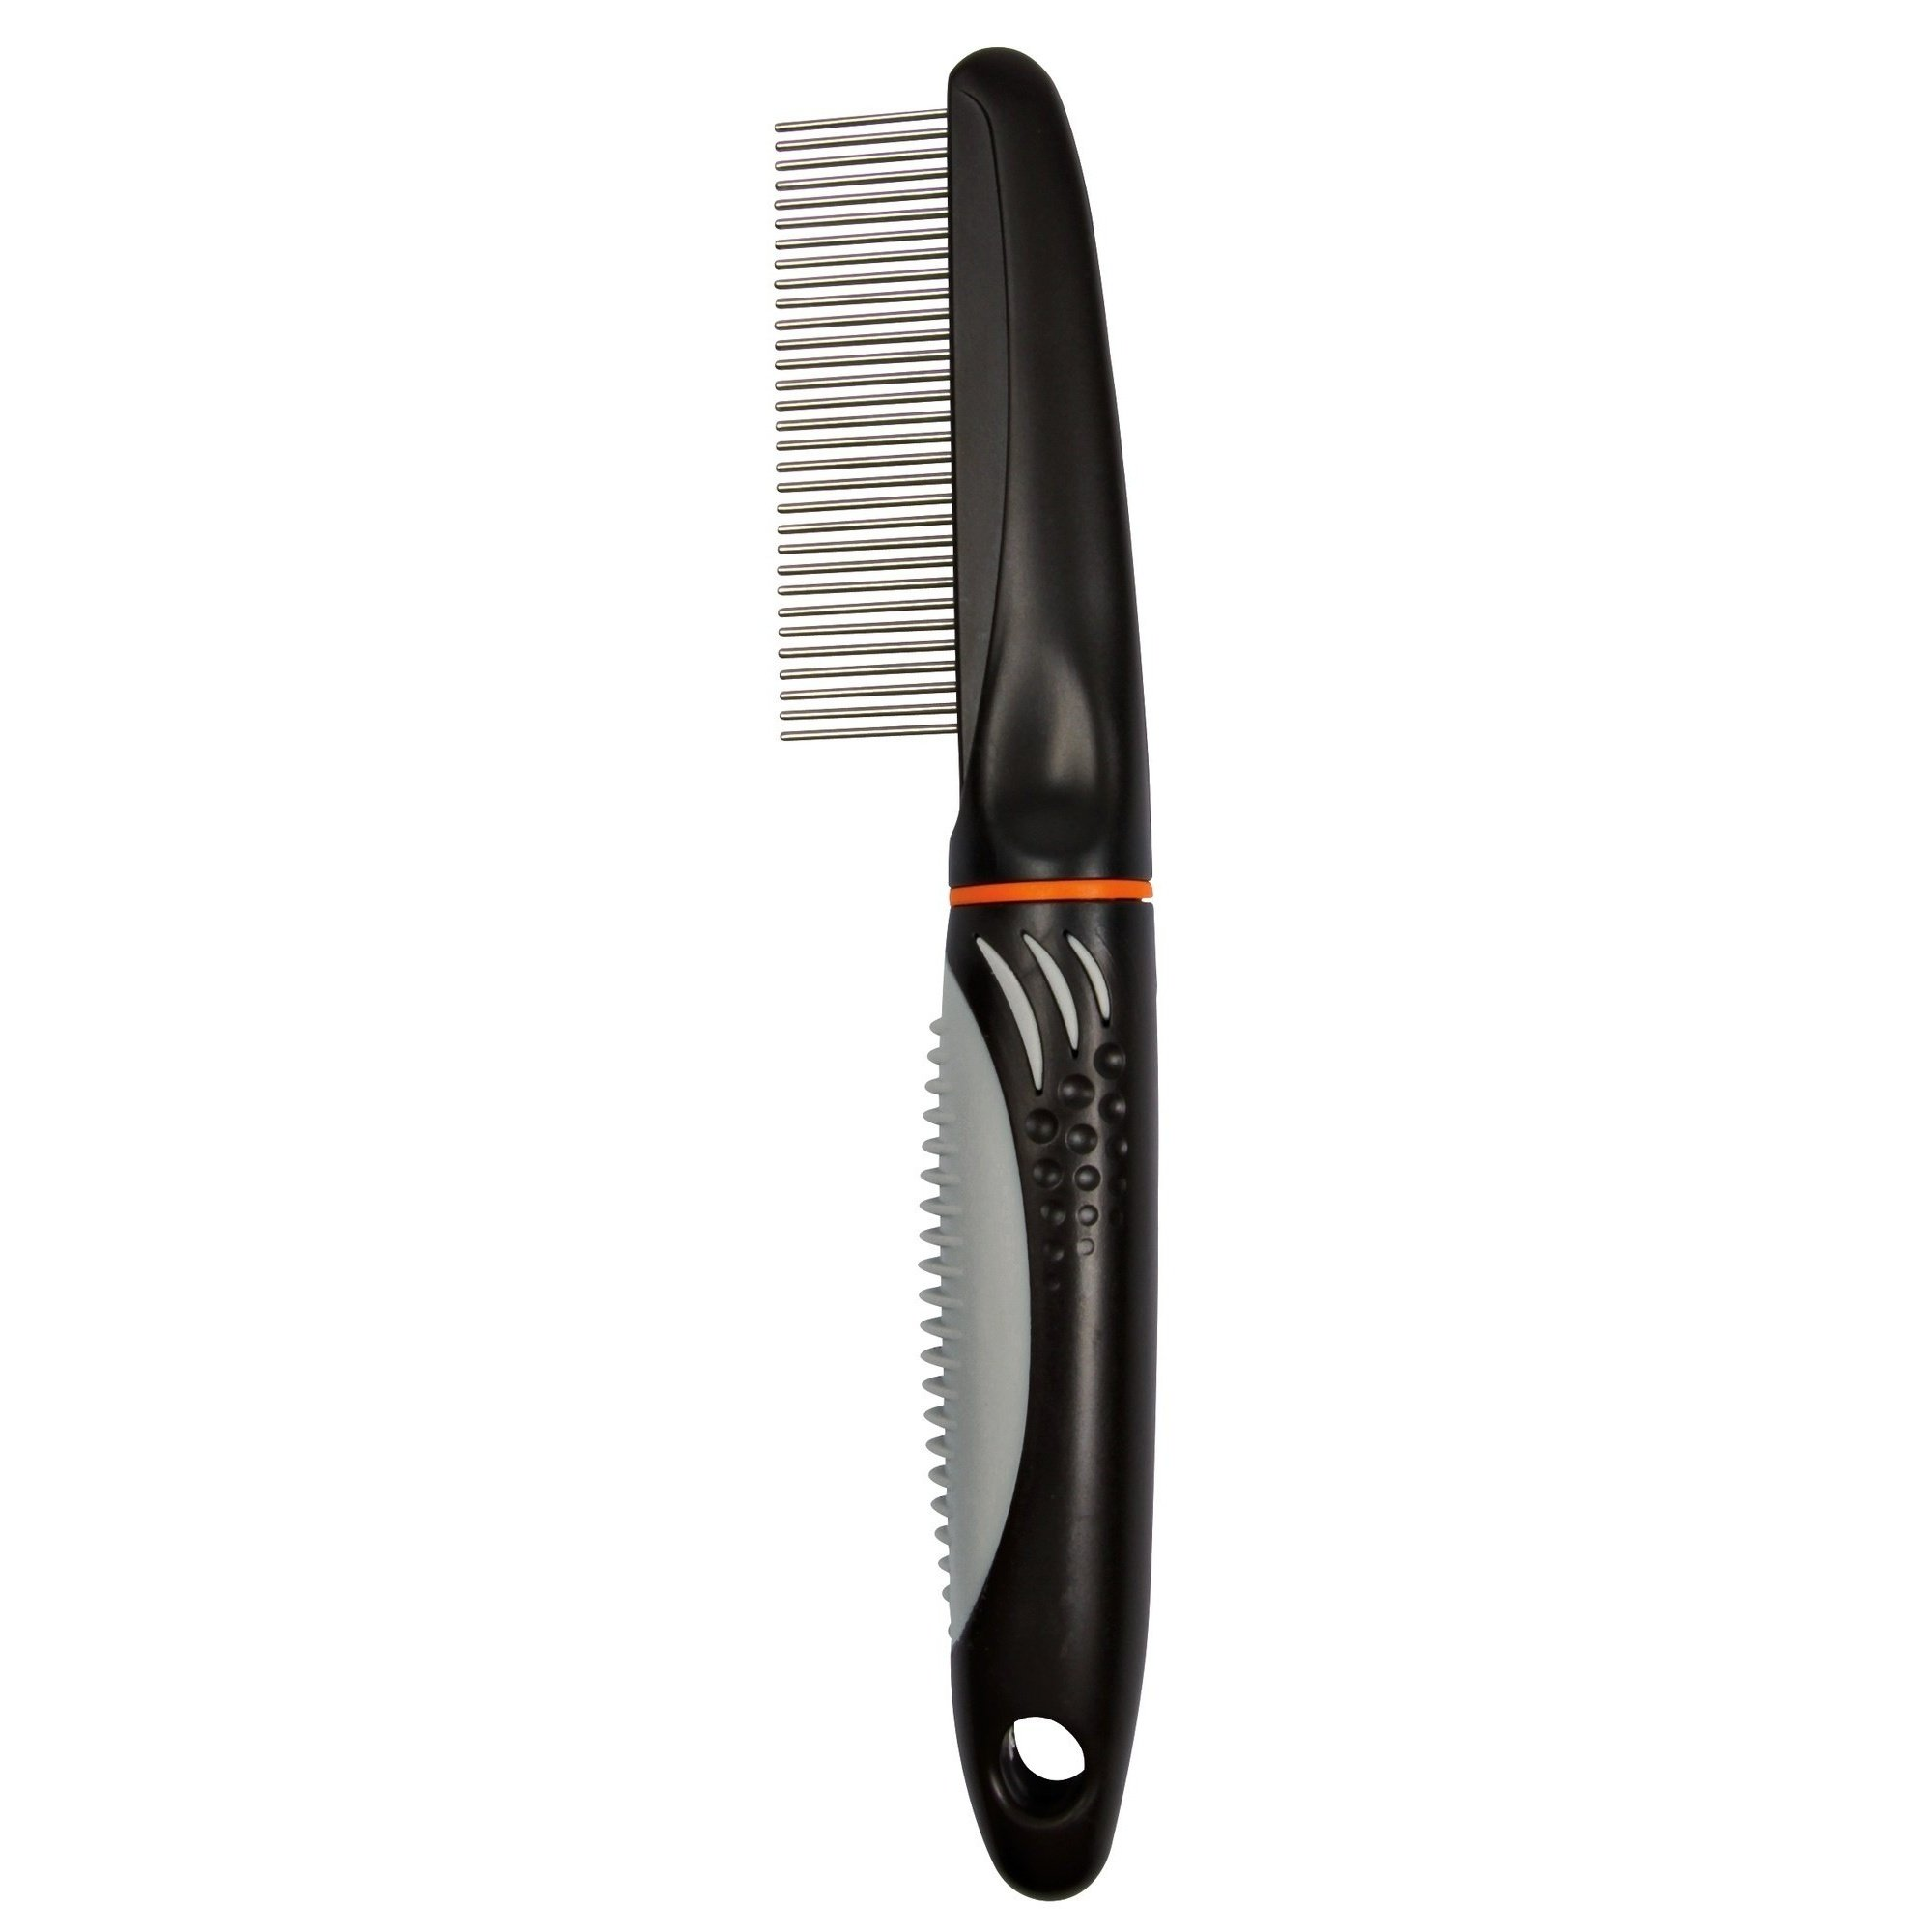 Trixie comb with fine teeth - 22 cm